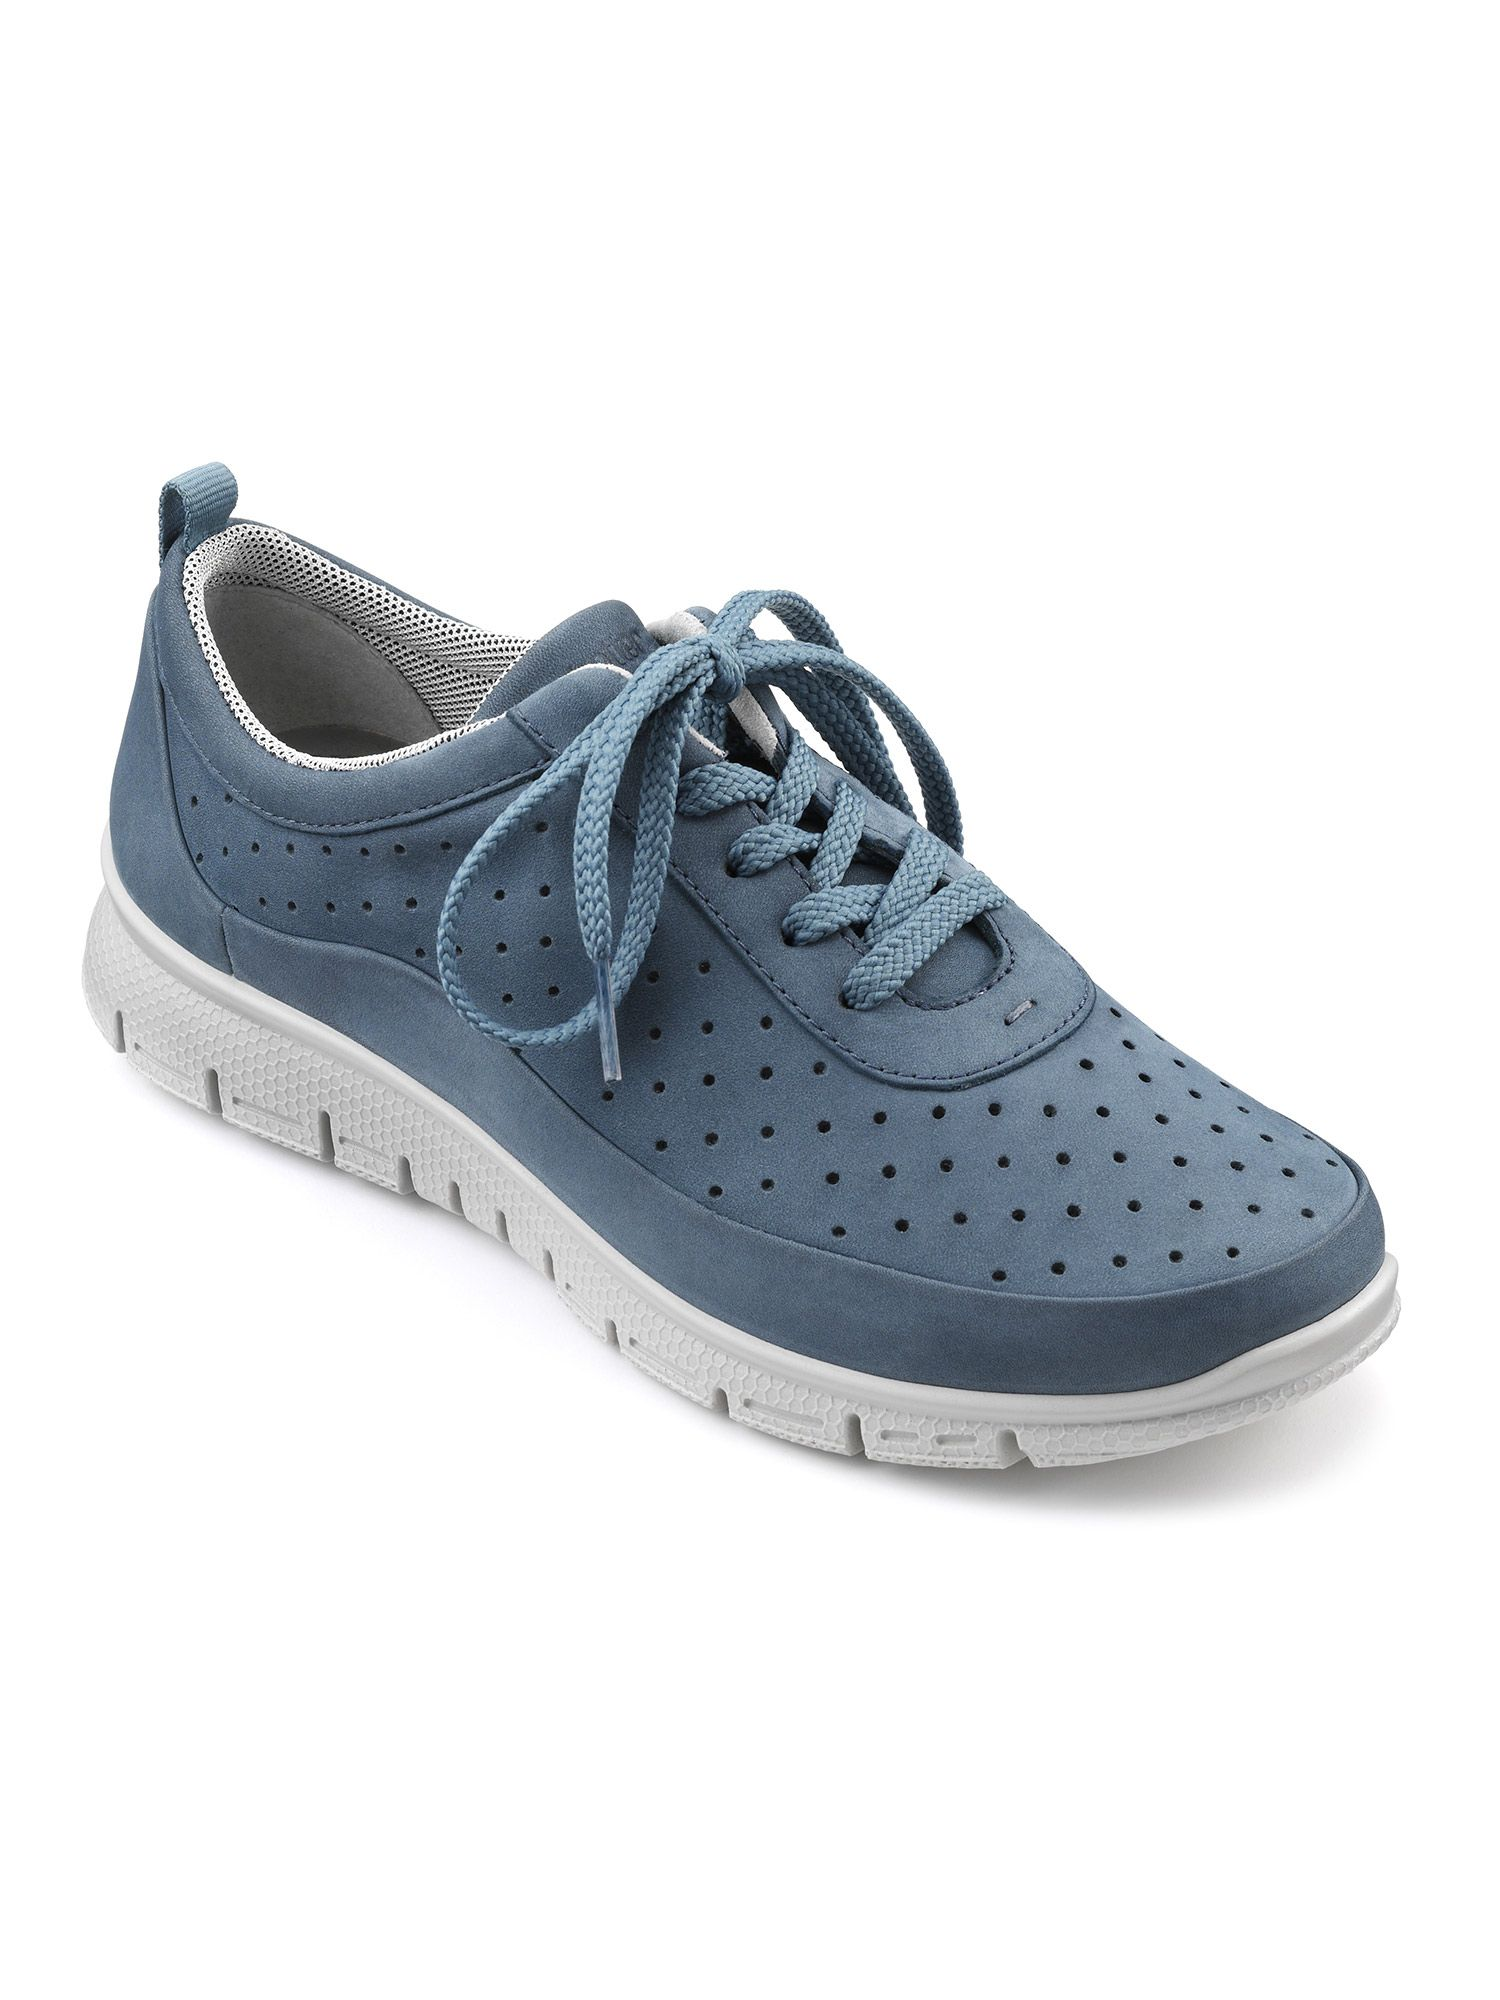 Hotter Gravity Ladies Active Shoe, Blue